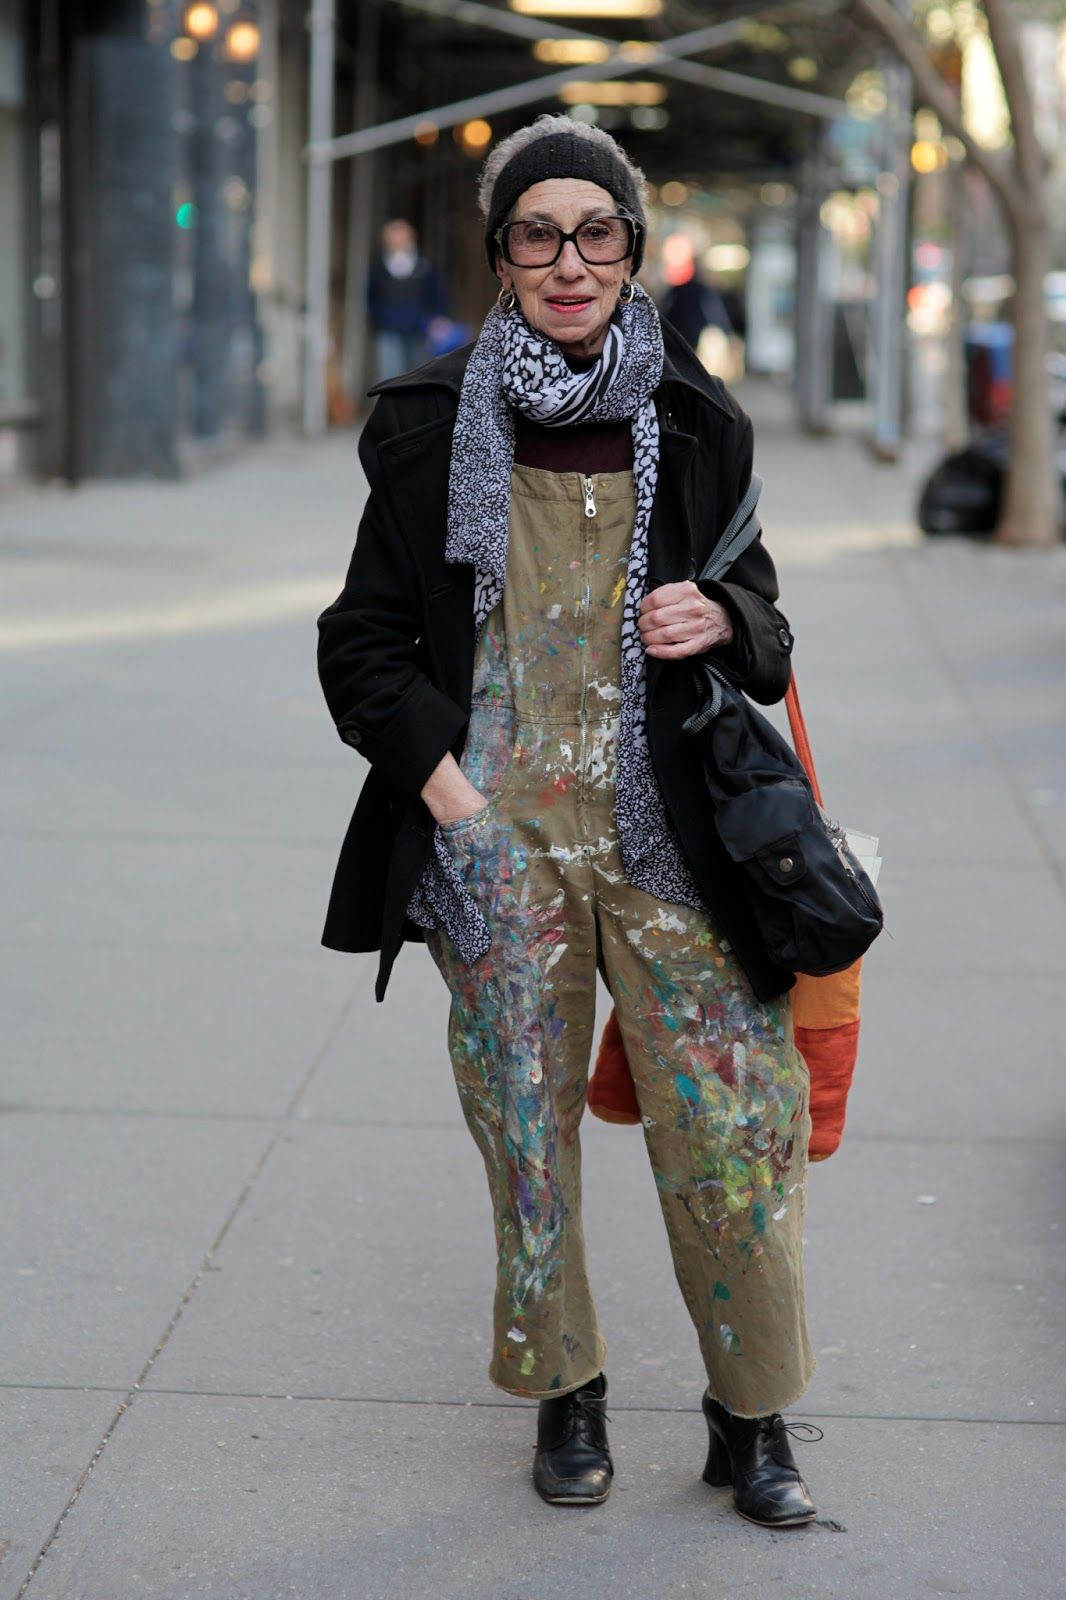 ADVANCED STYLE: Work Clothes : When I approached the woman above about  taking her photograph she replied,